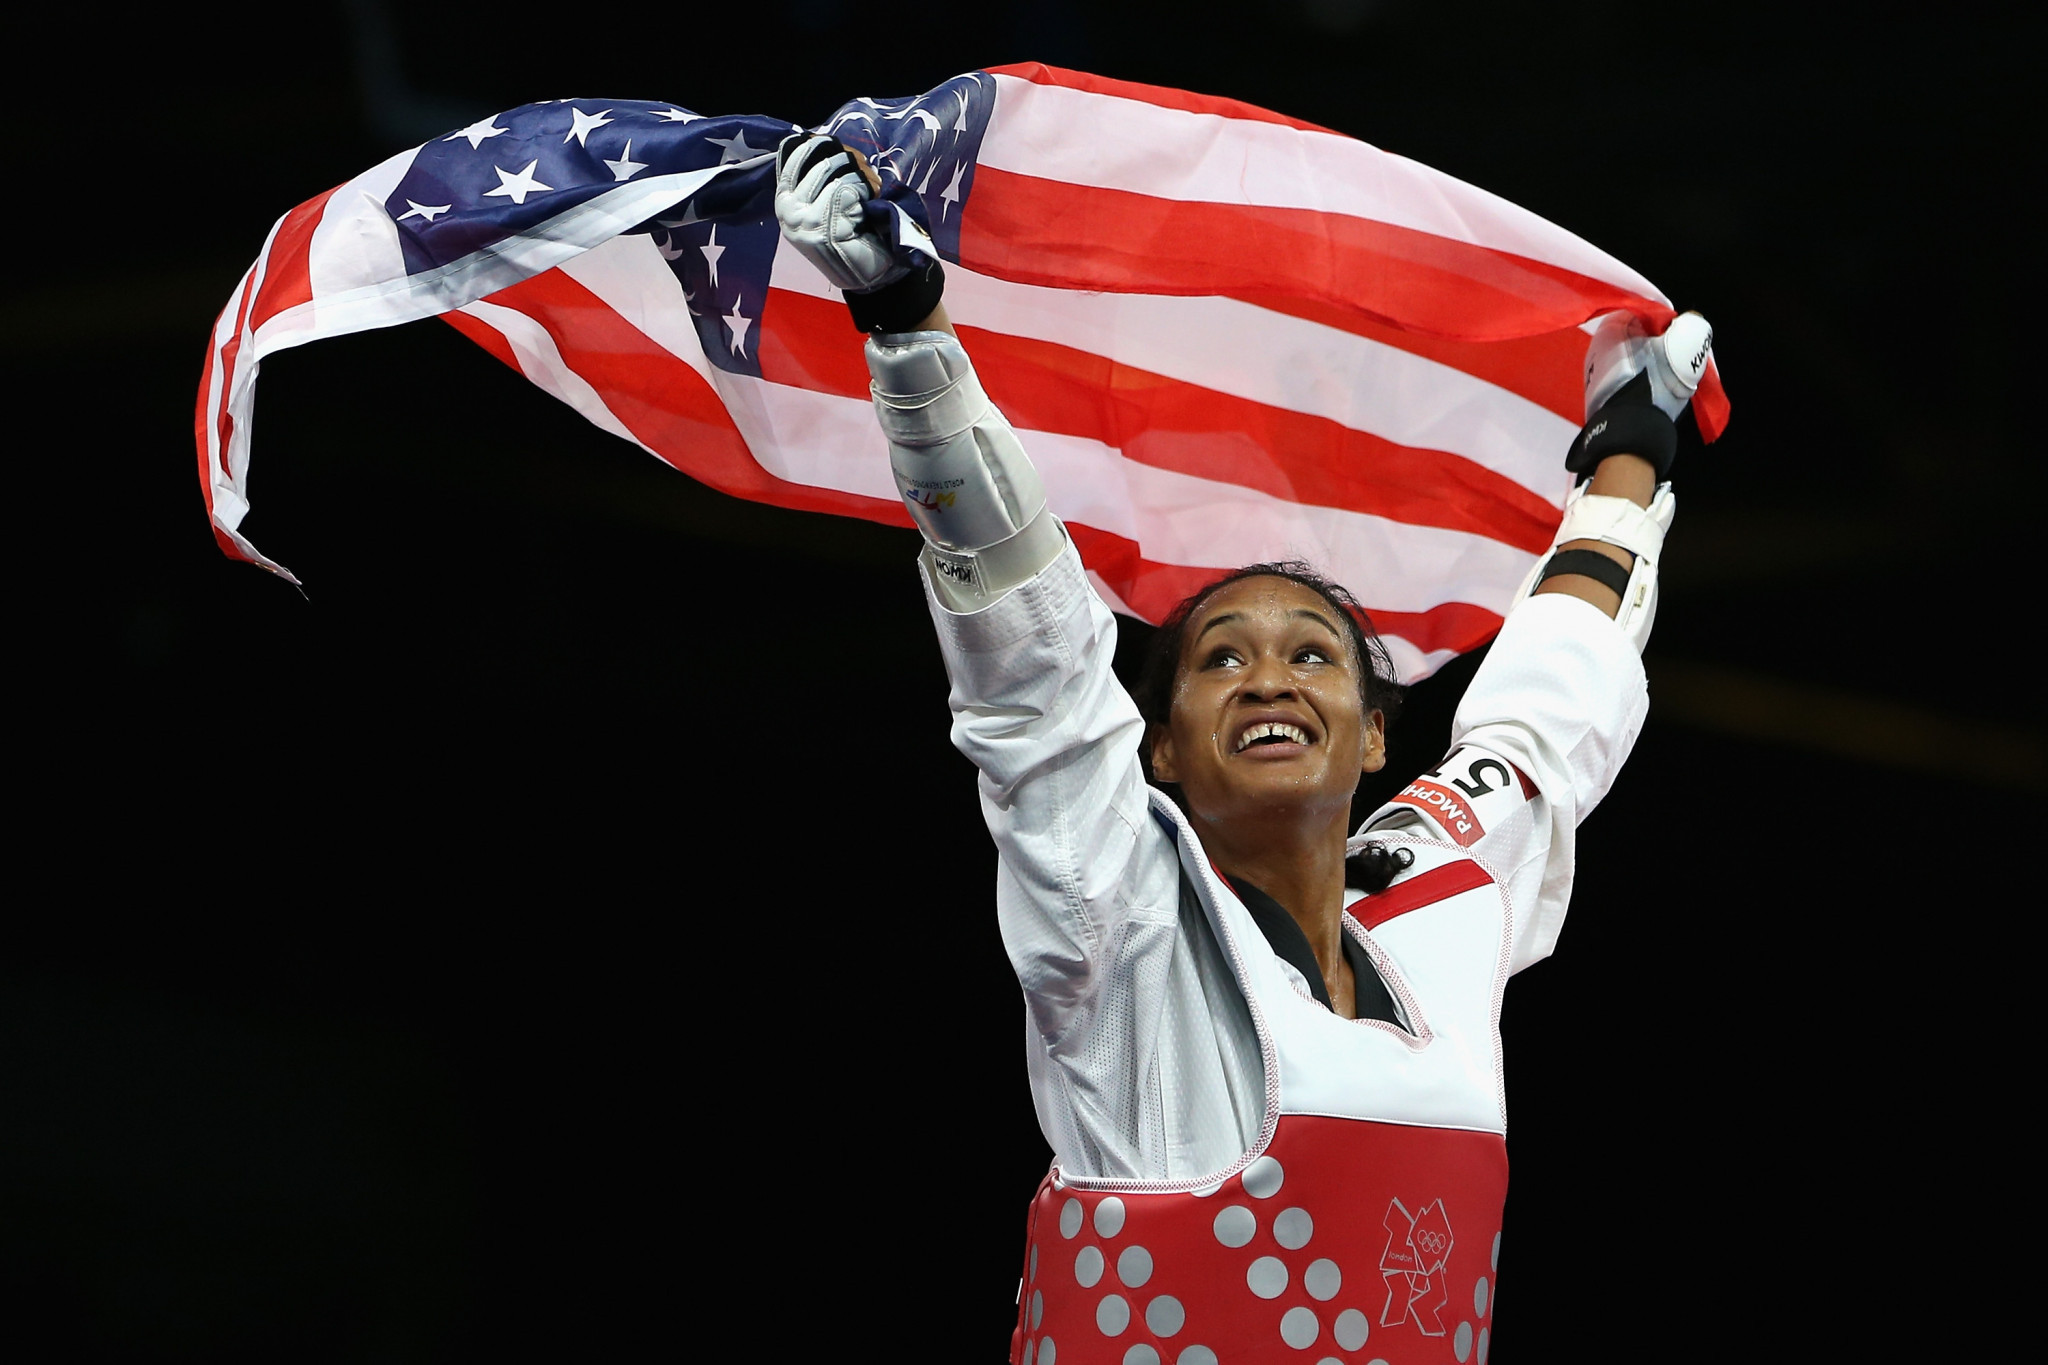 USA Taekwondo is hoping to improve international performance in time for the home Los Angeles 2028 Olympics ©Getty Images